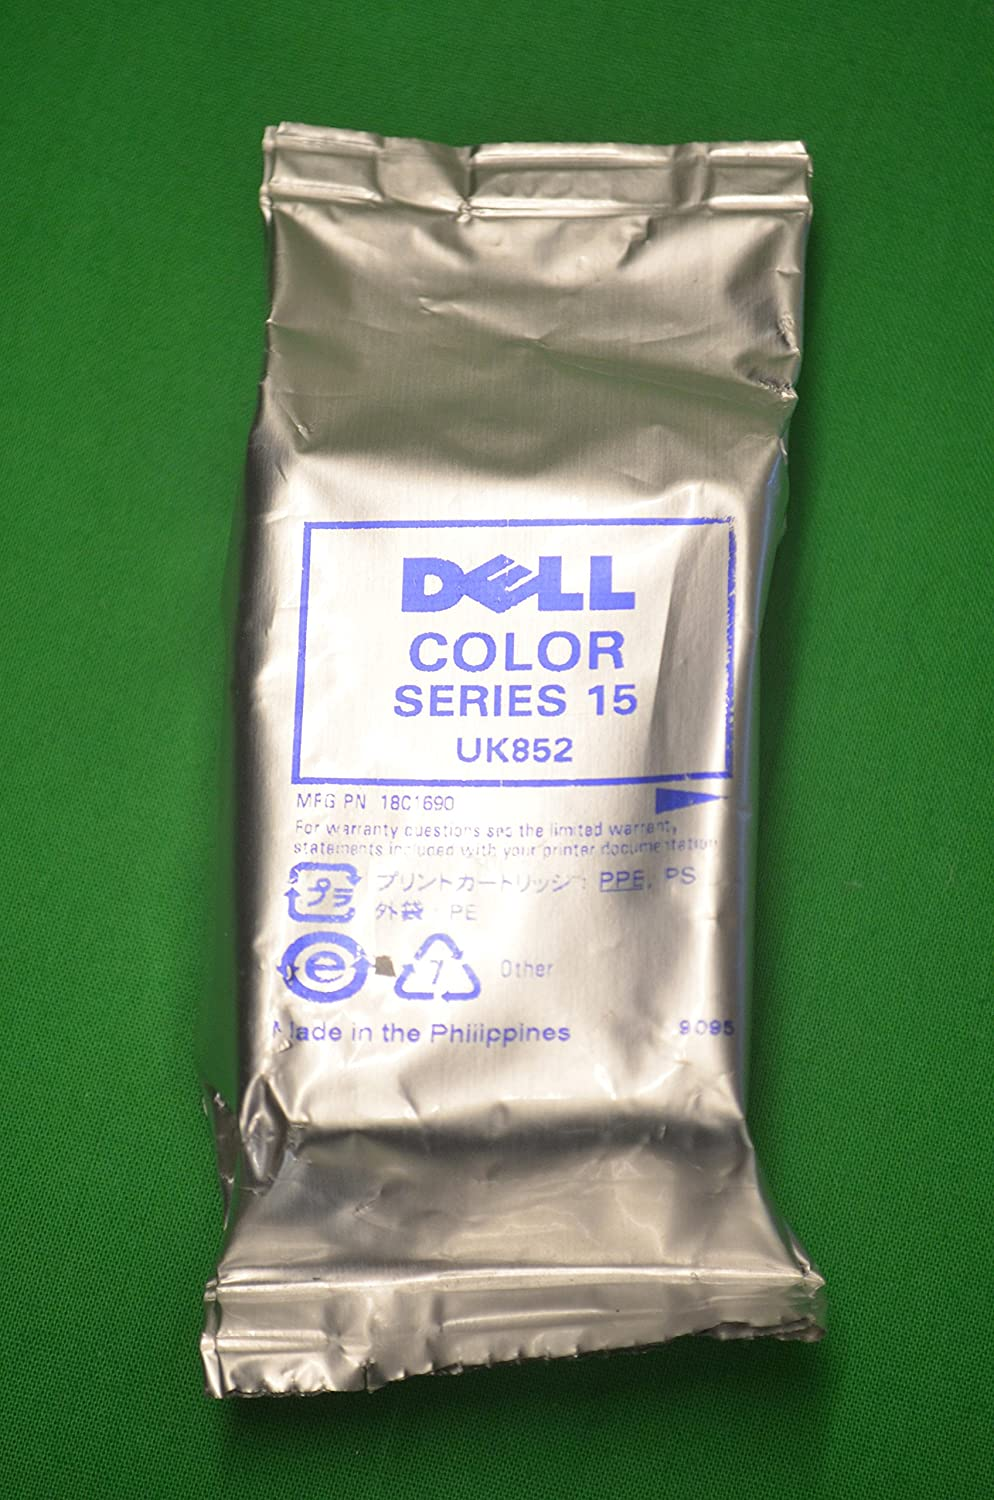 DELL AIO V105 IJET CARTRIDGE KIT COLOUR